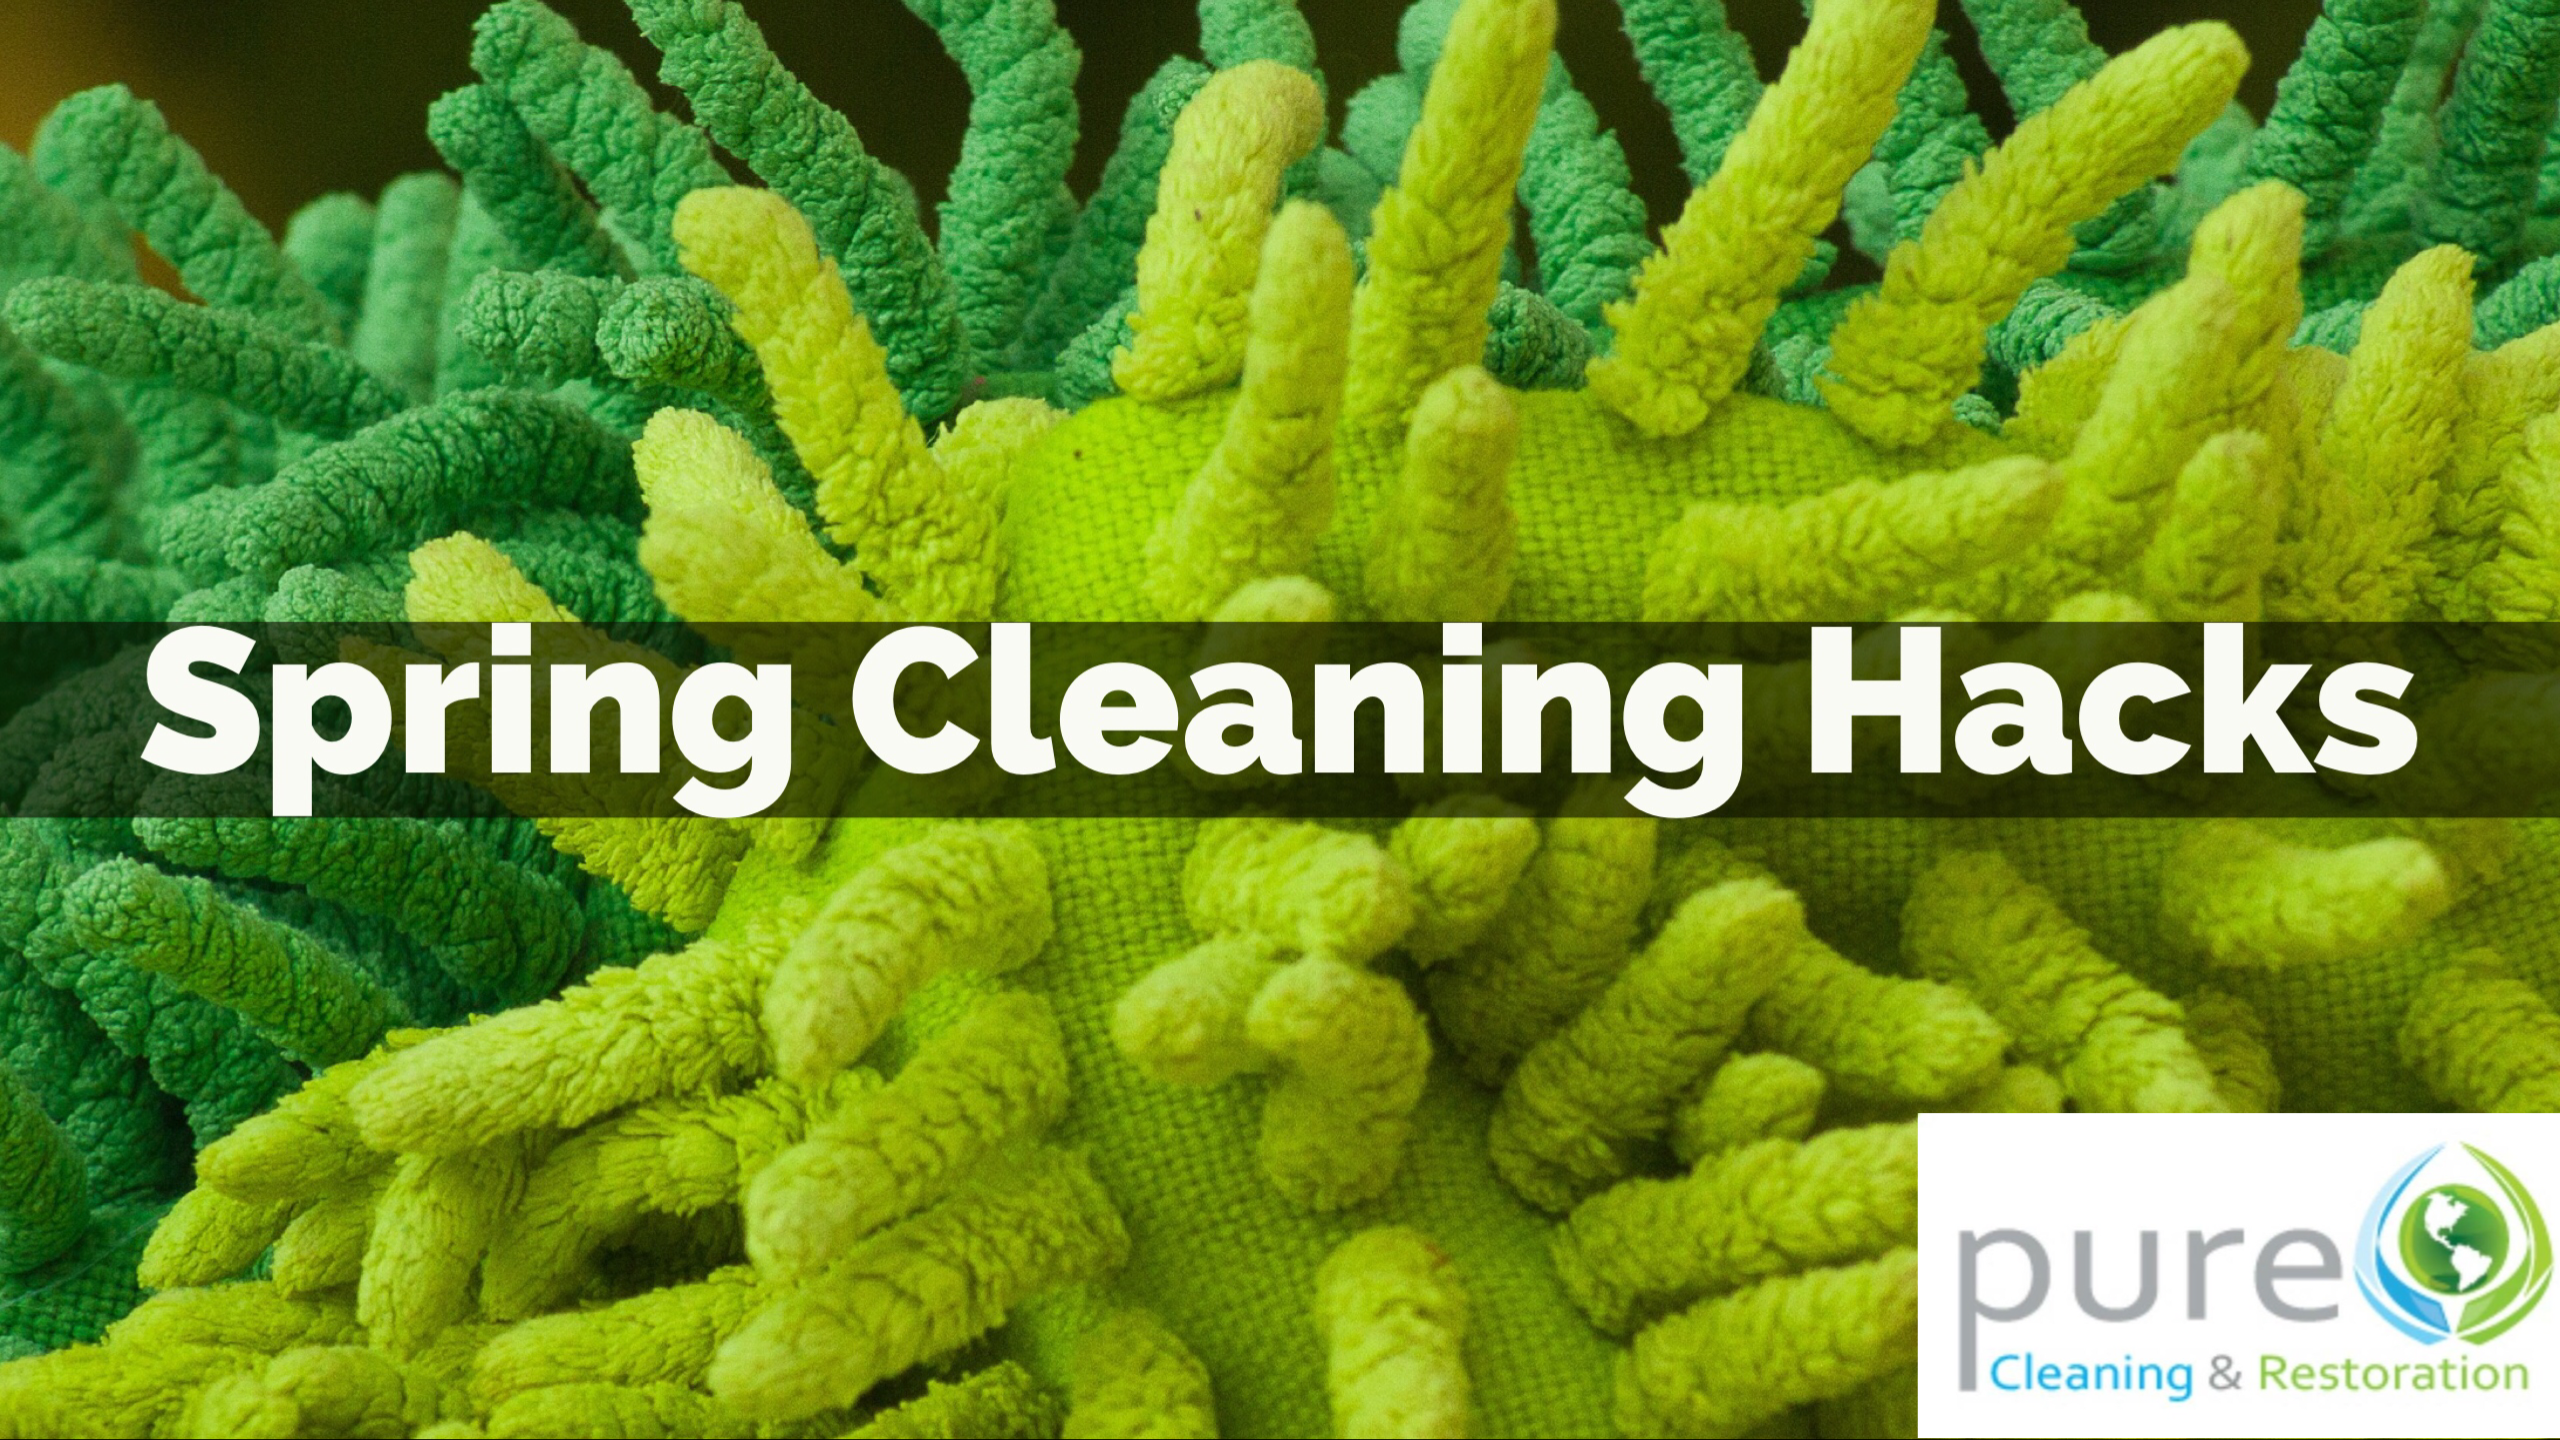 spring cleaning hacks, cleaning tips, carpet cleaning